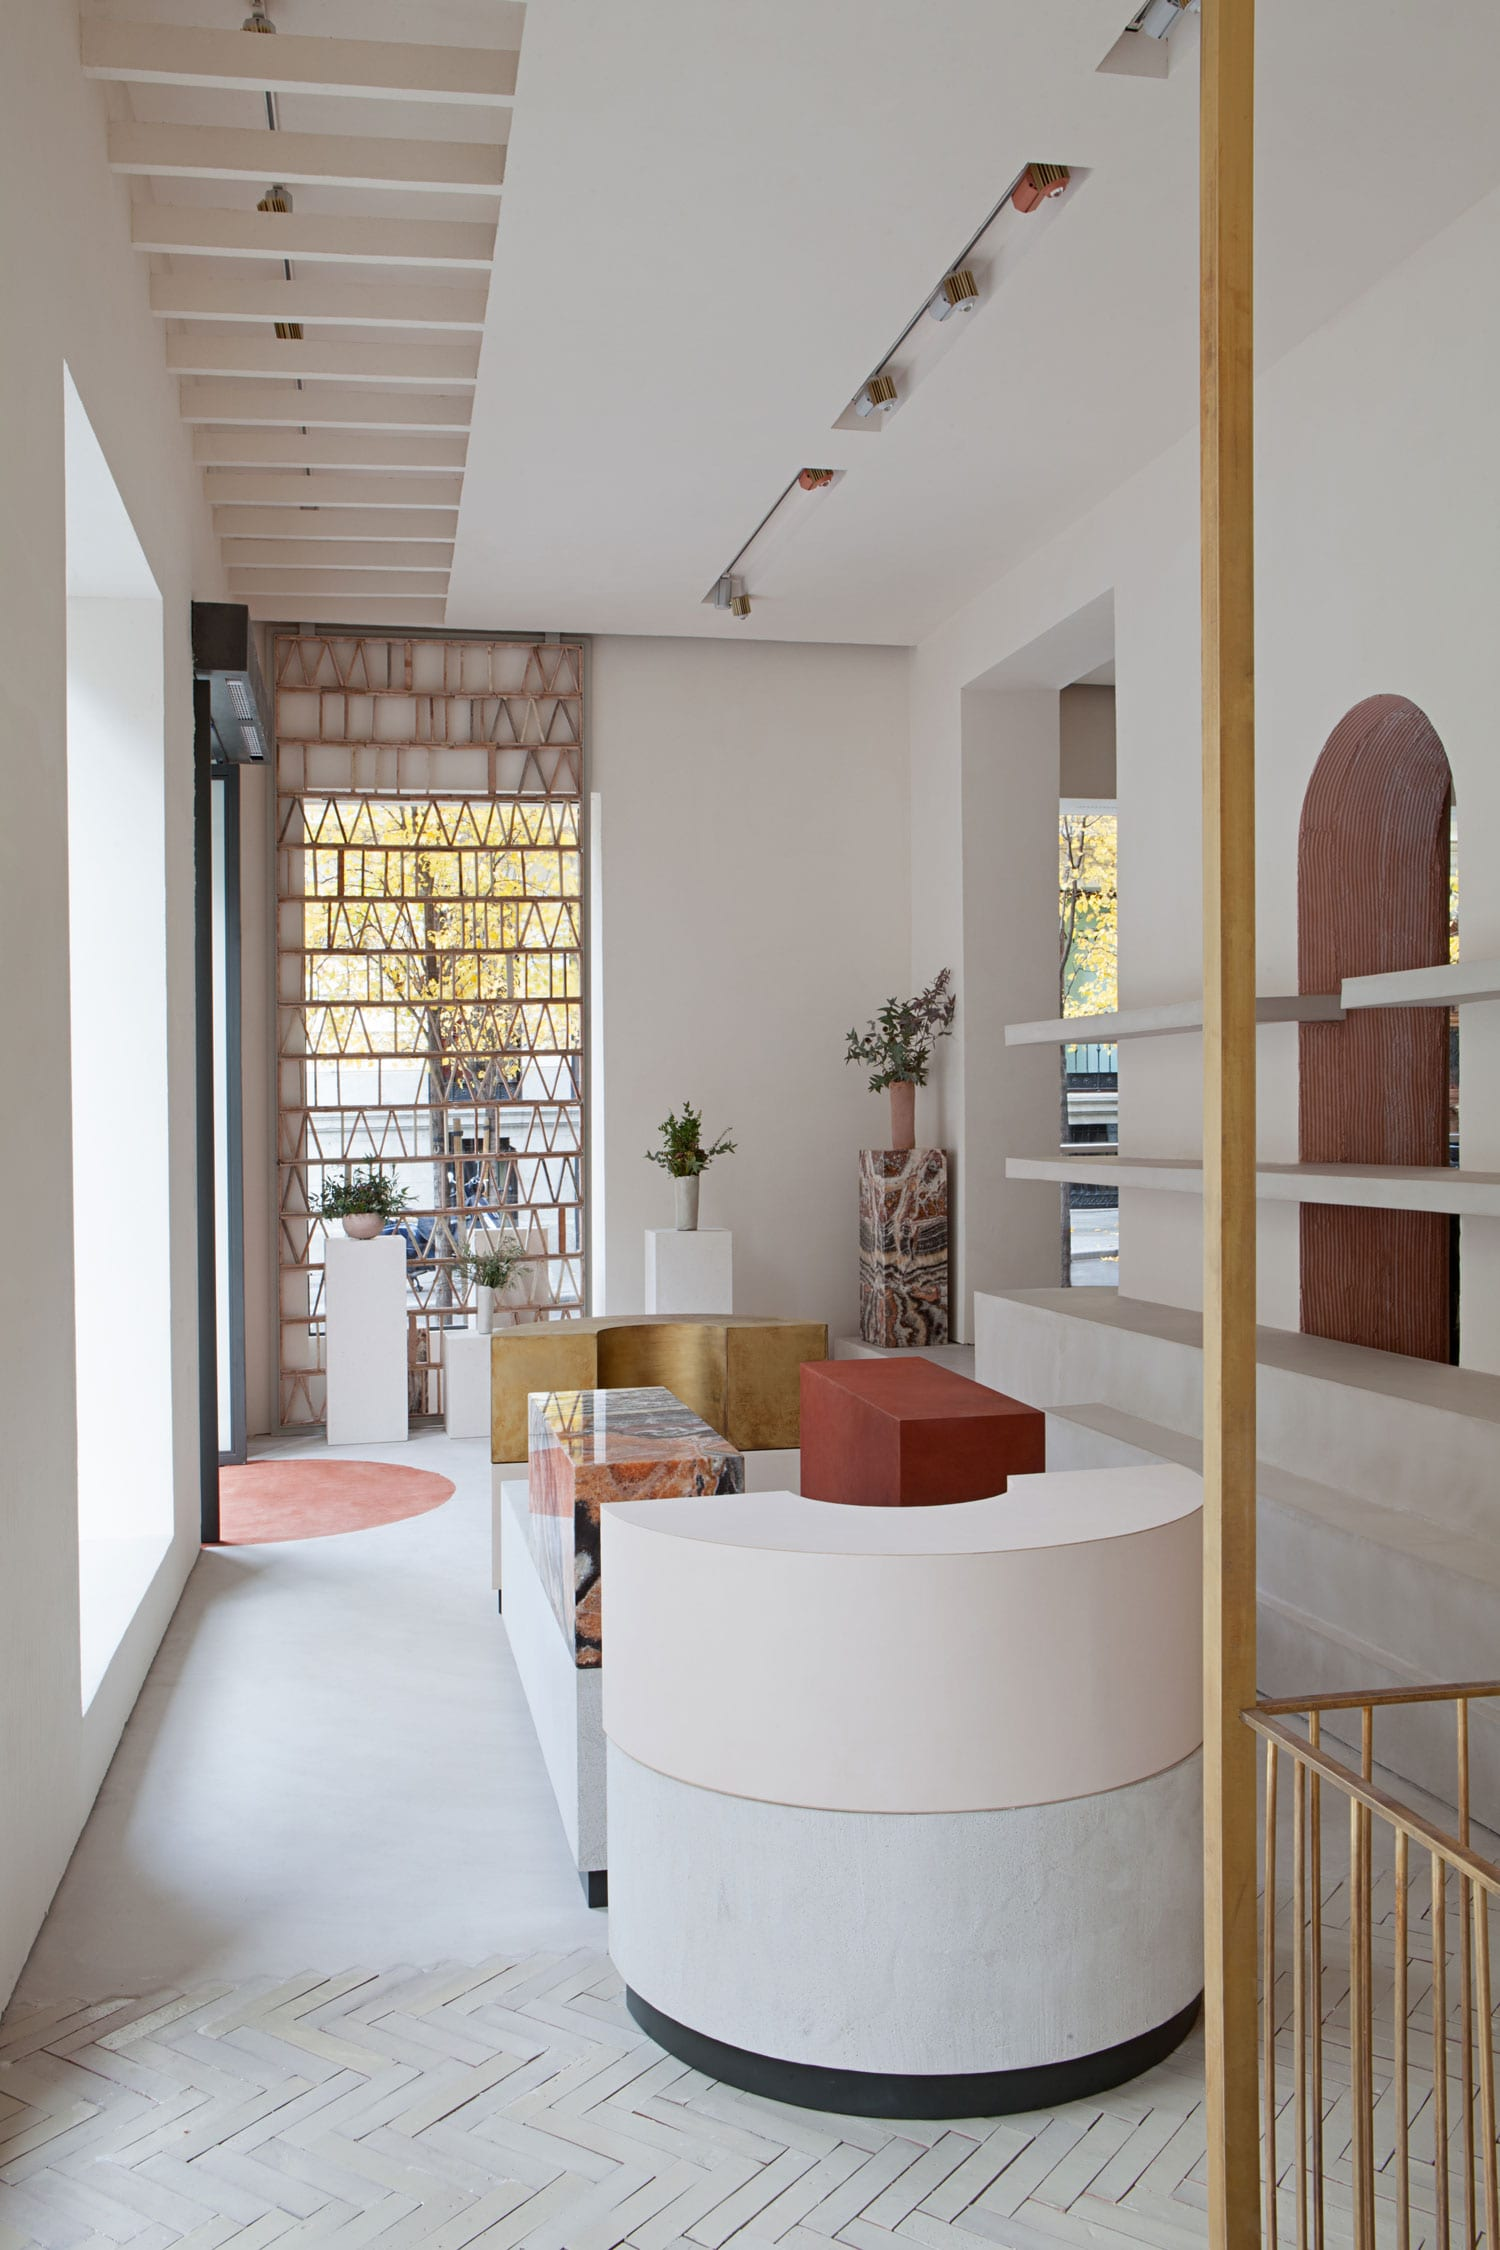 Malababa Flagship Store Madrid, Spain Designed by Ciszak Dalmas | Yellowtrace